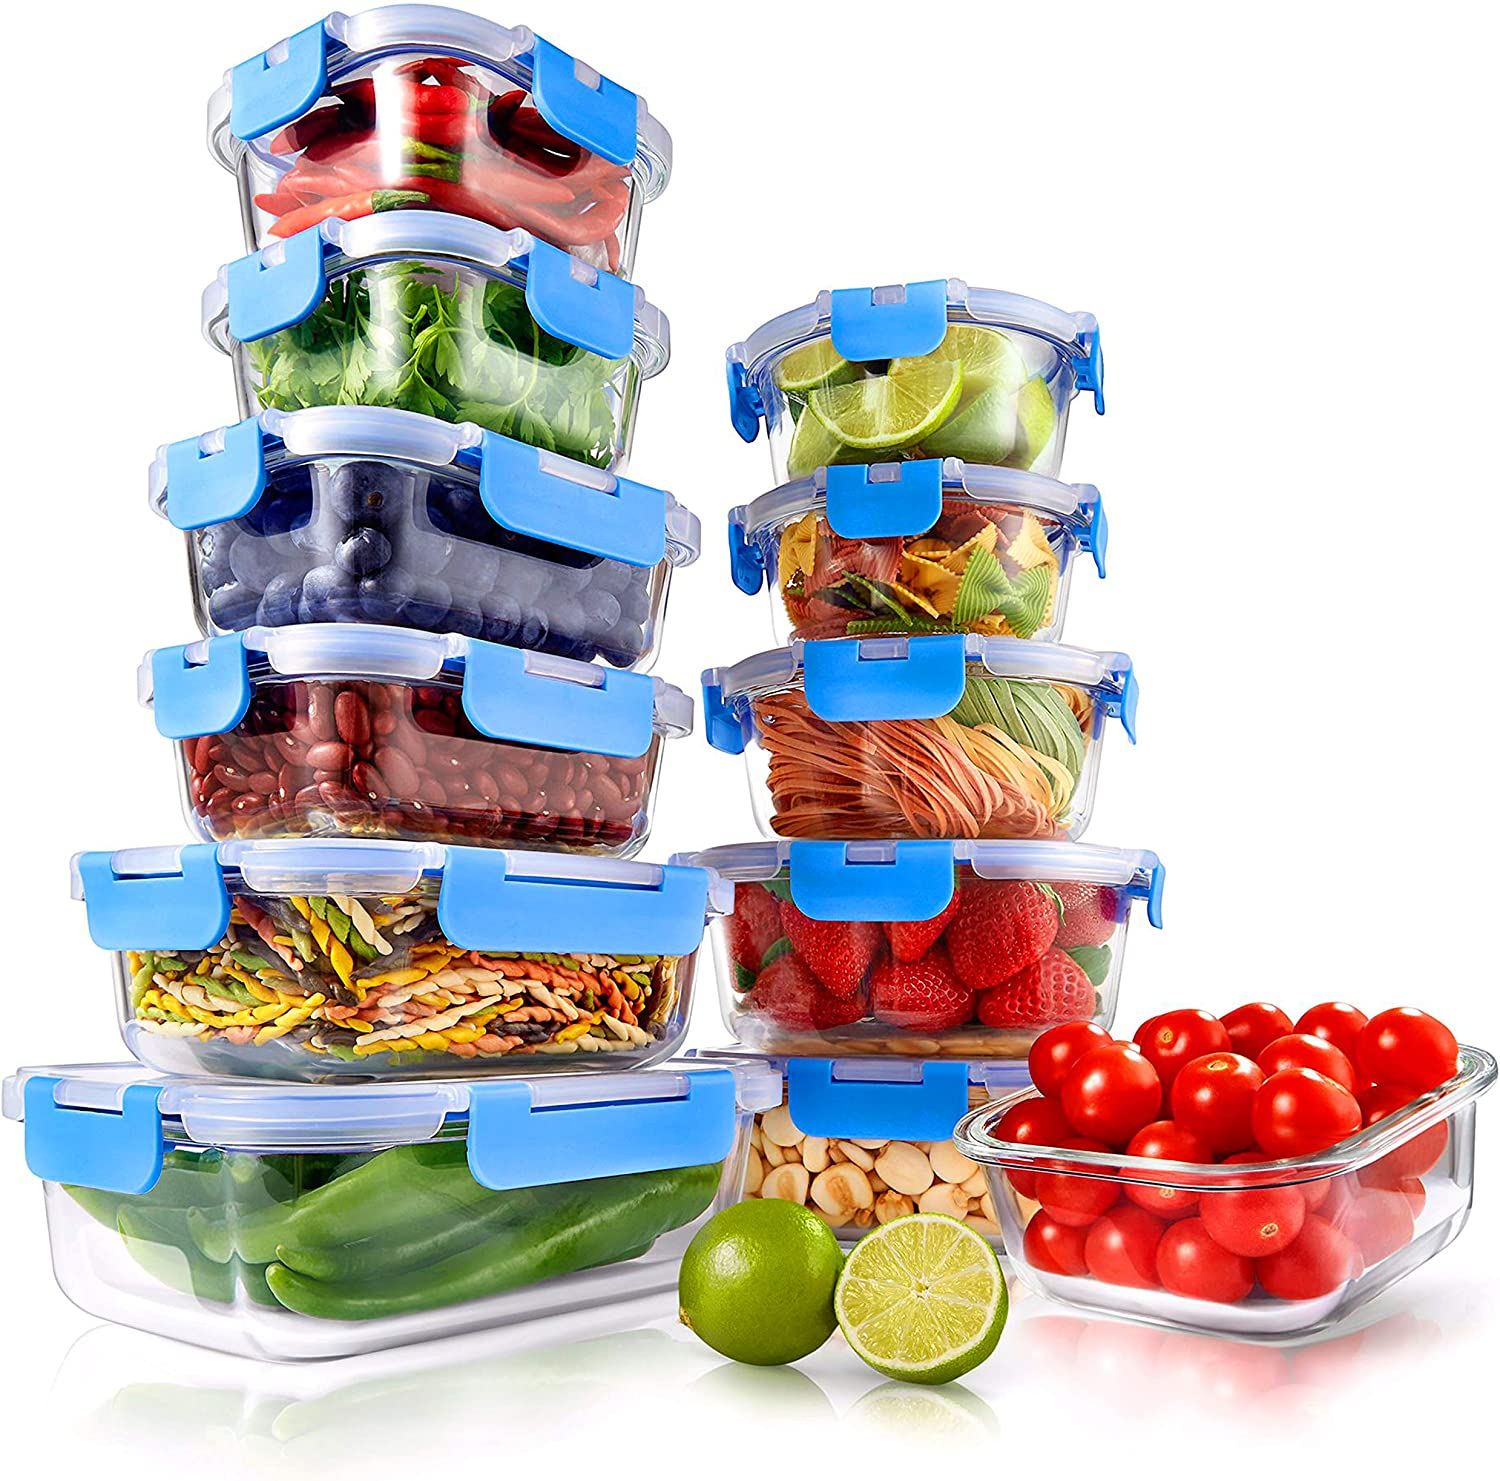 24-Piece Glass 新品■送料無料■ Food Storage Containers Glas Superior - Stackable お得セット